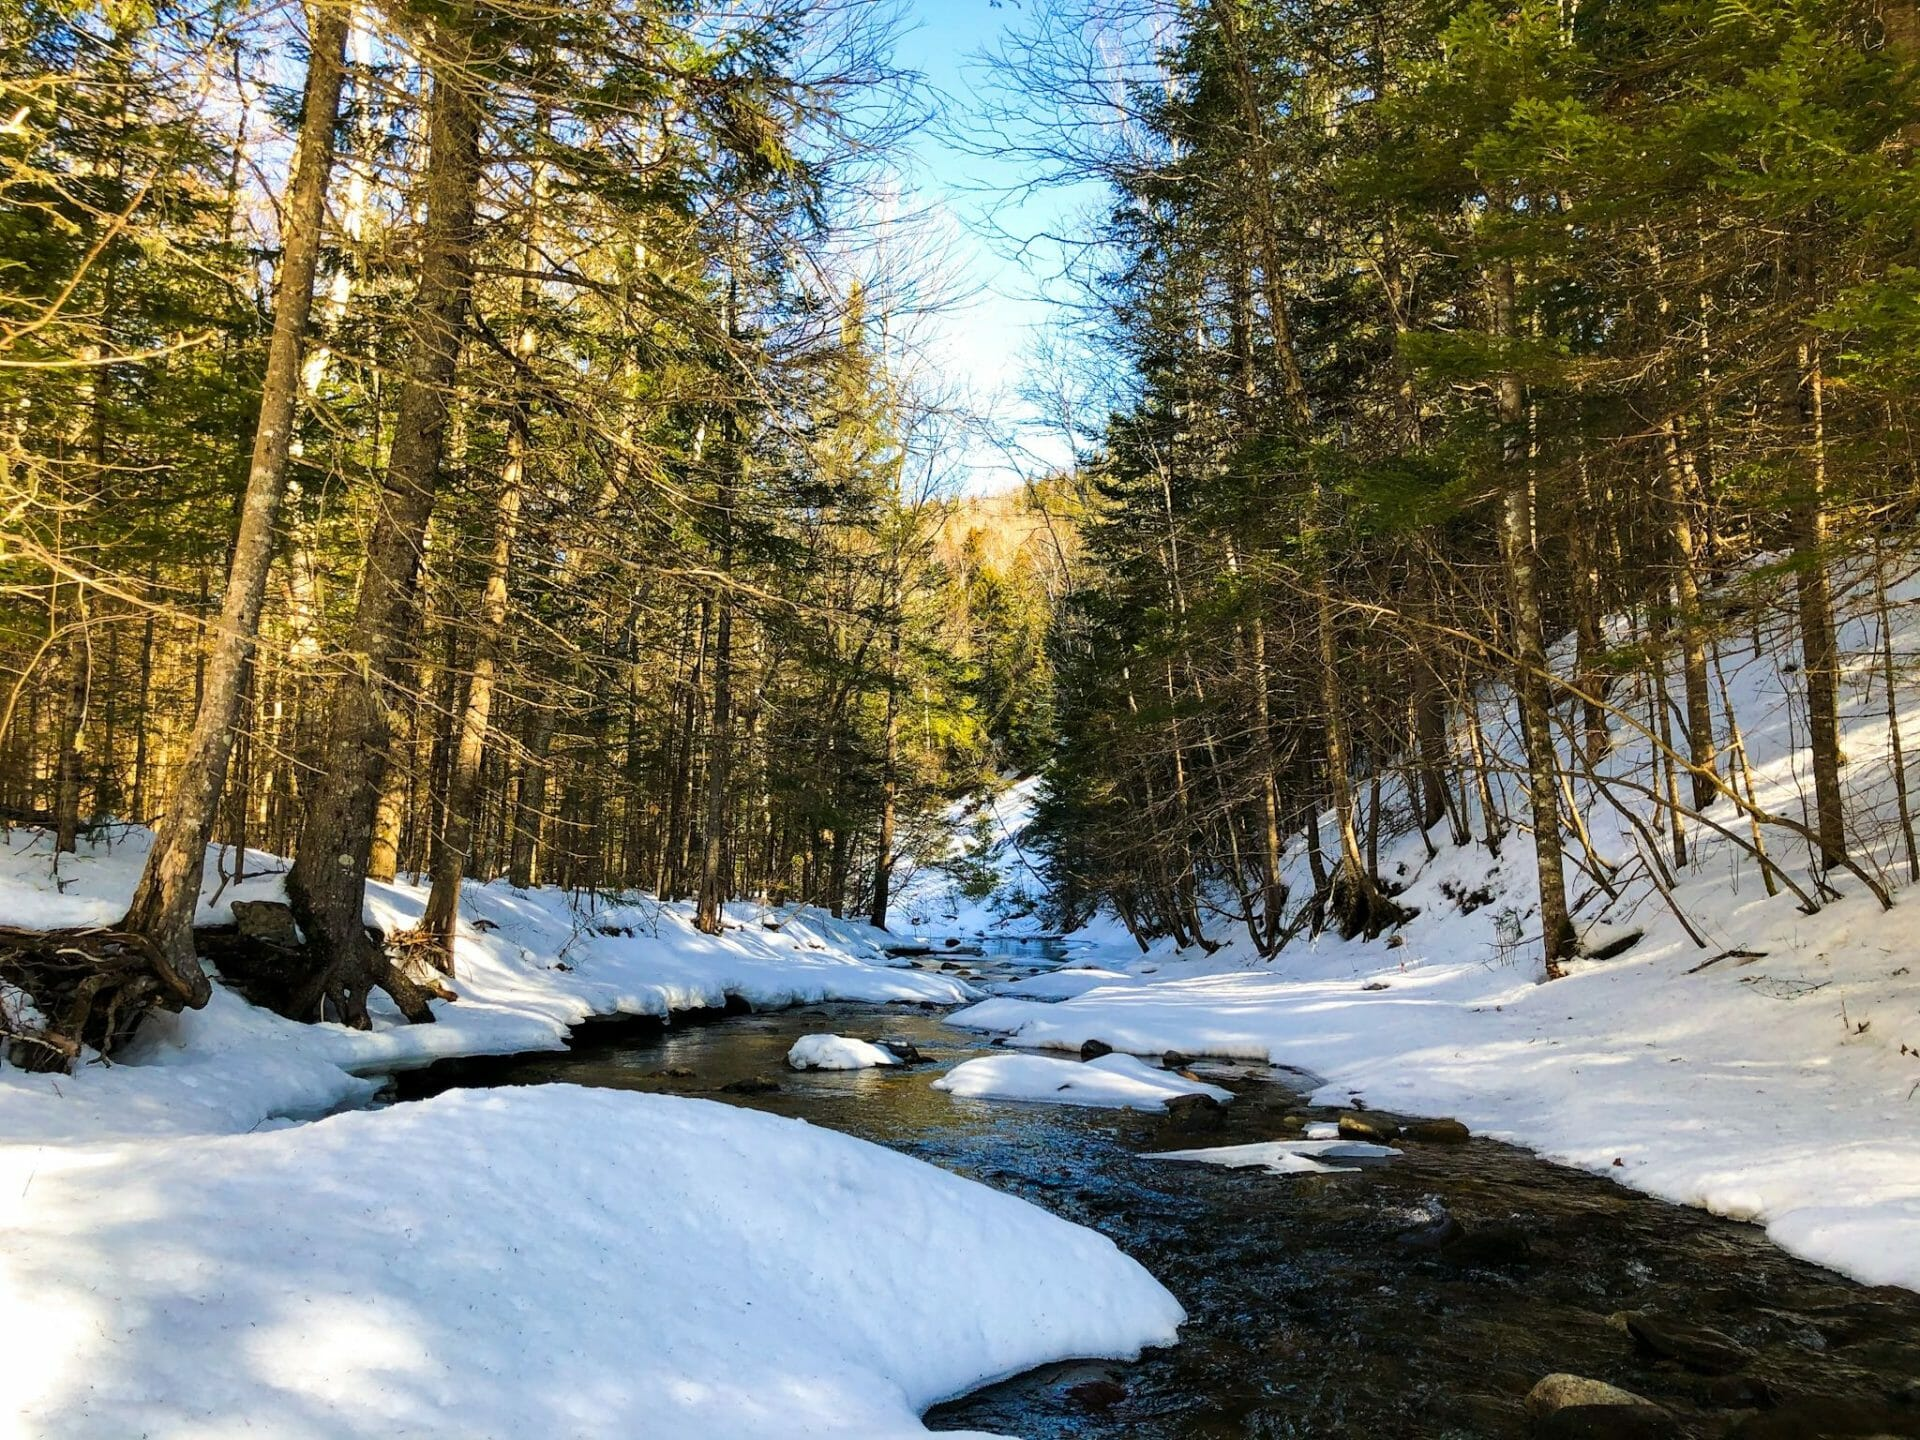 Snow covered river leading into forest of trees with blue sky above